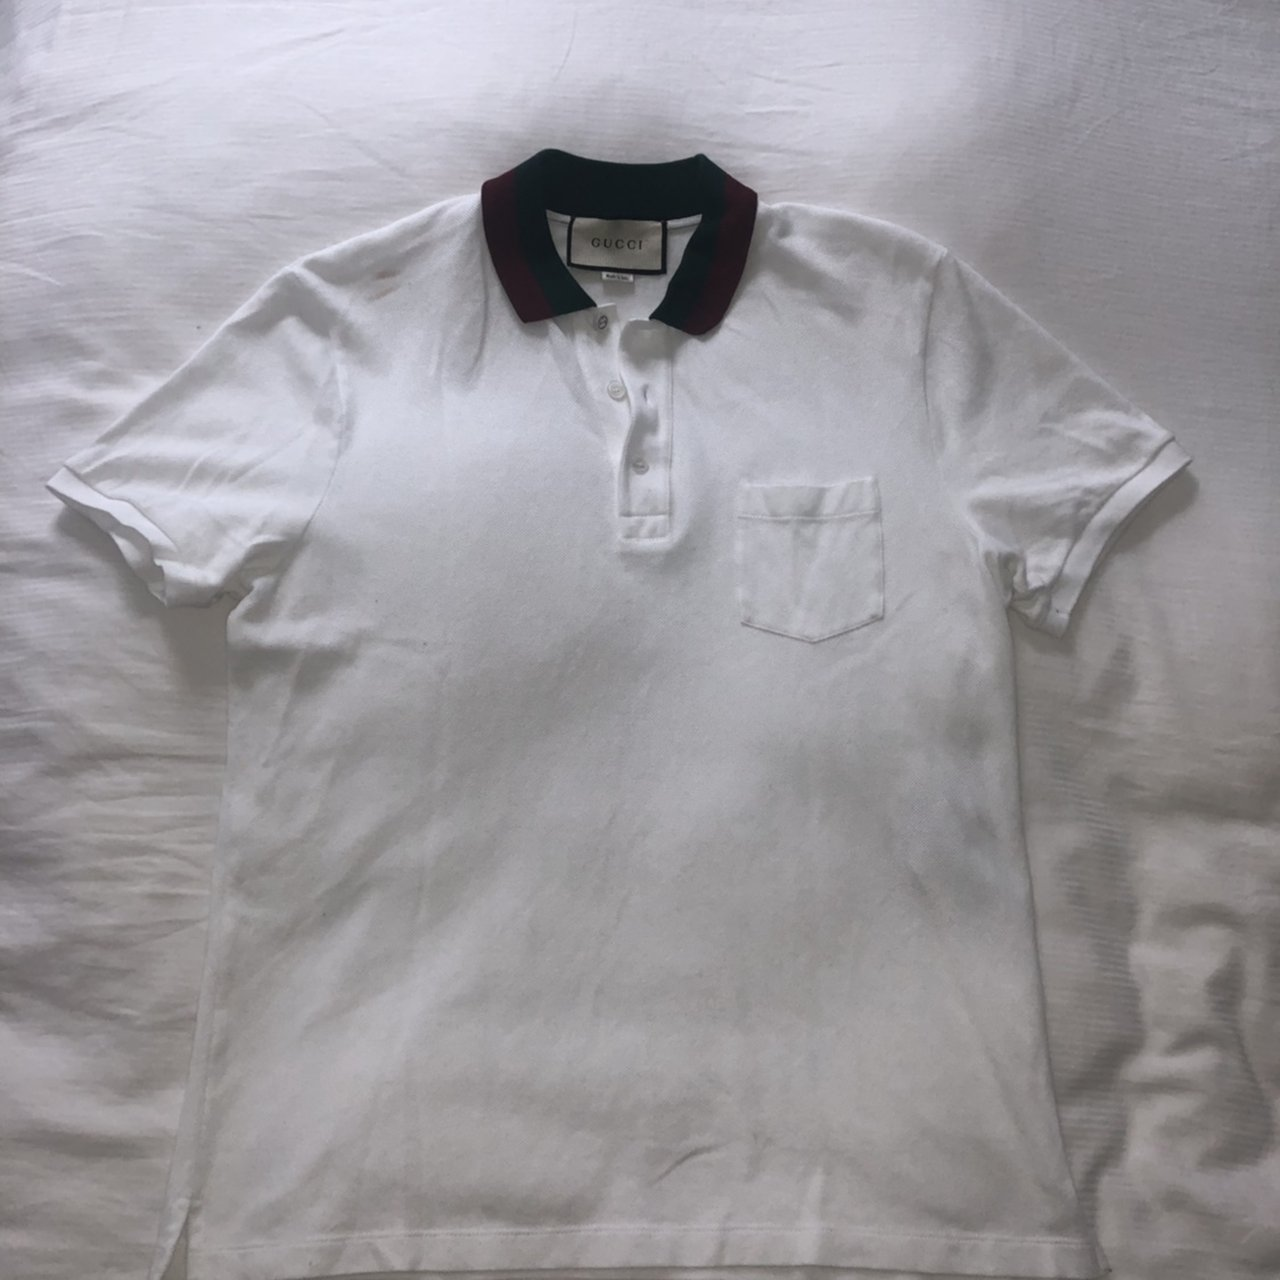 d4b2a7b3 @designeroutlet1000. last month. Salford, United Kingdom. Gucci collar men's  polo T-shirt. Size large